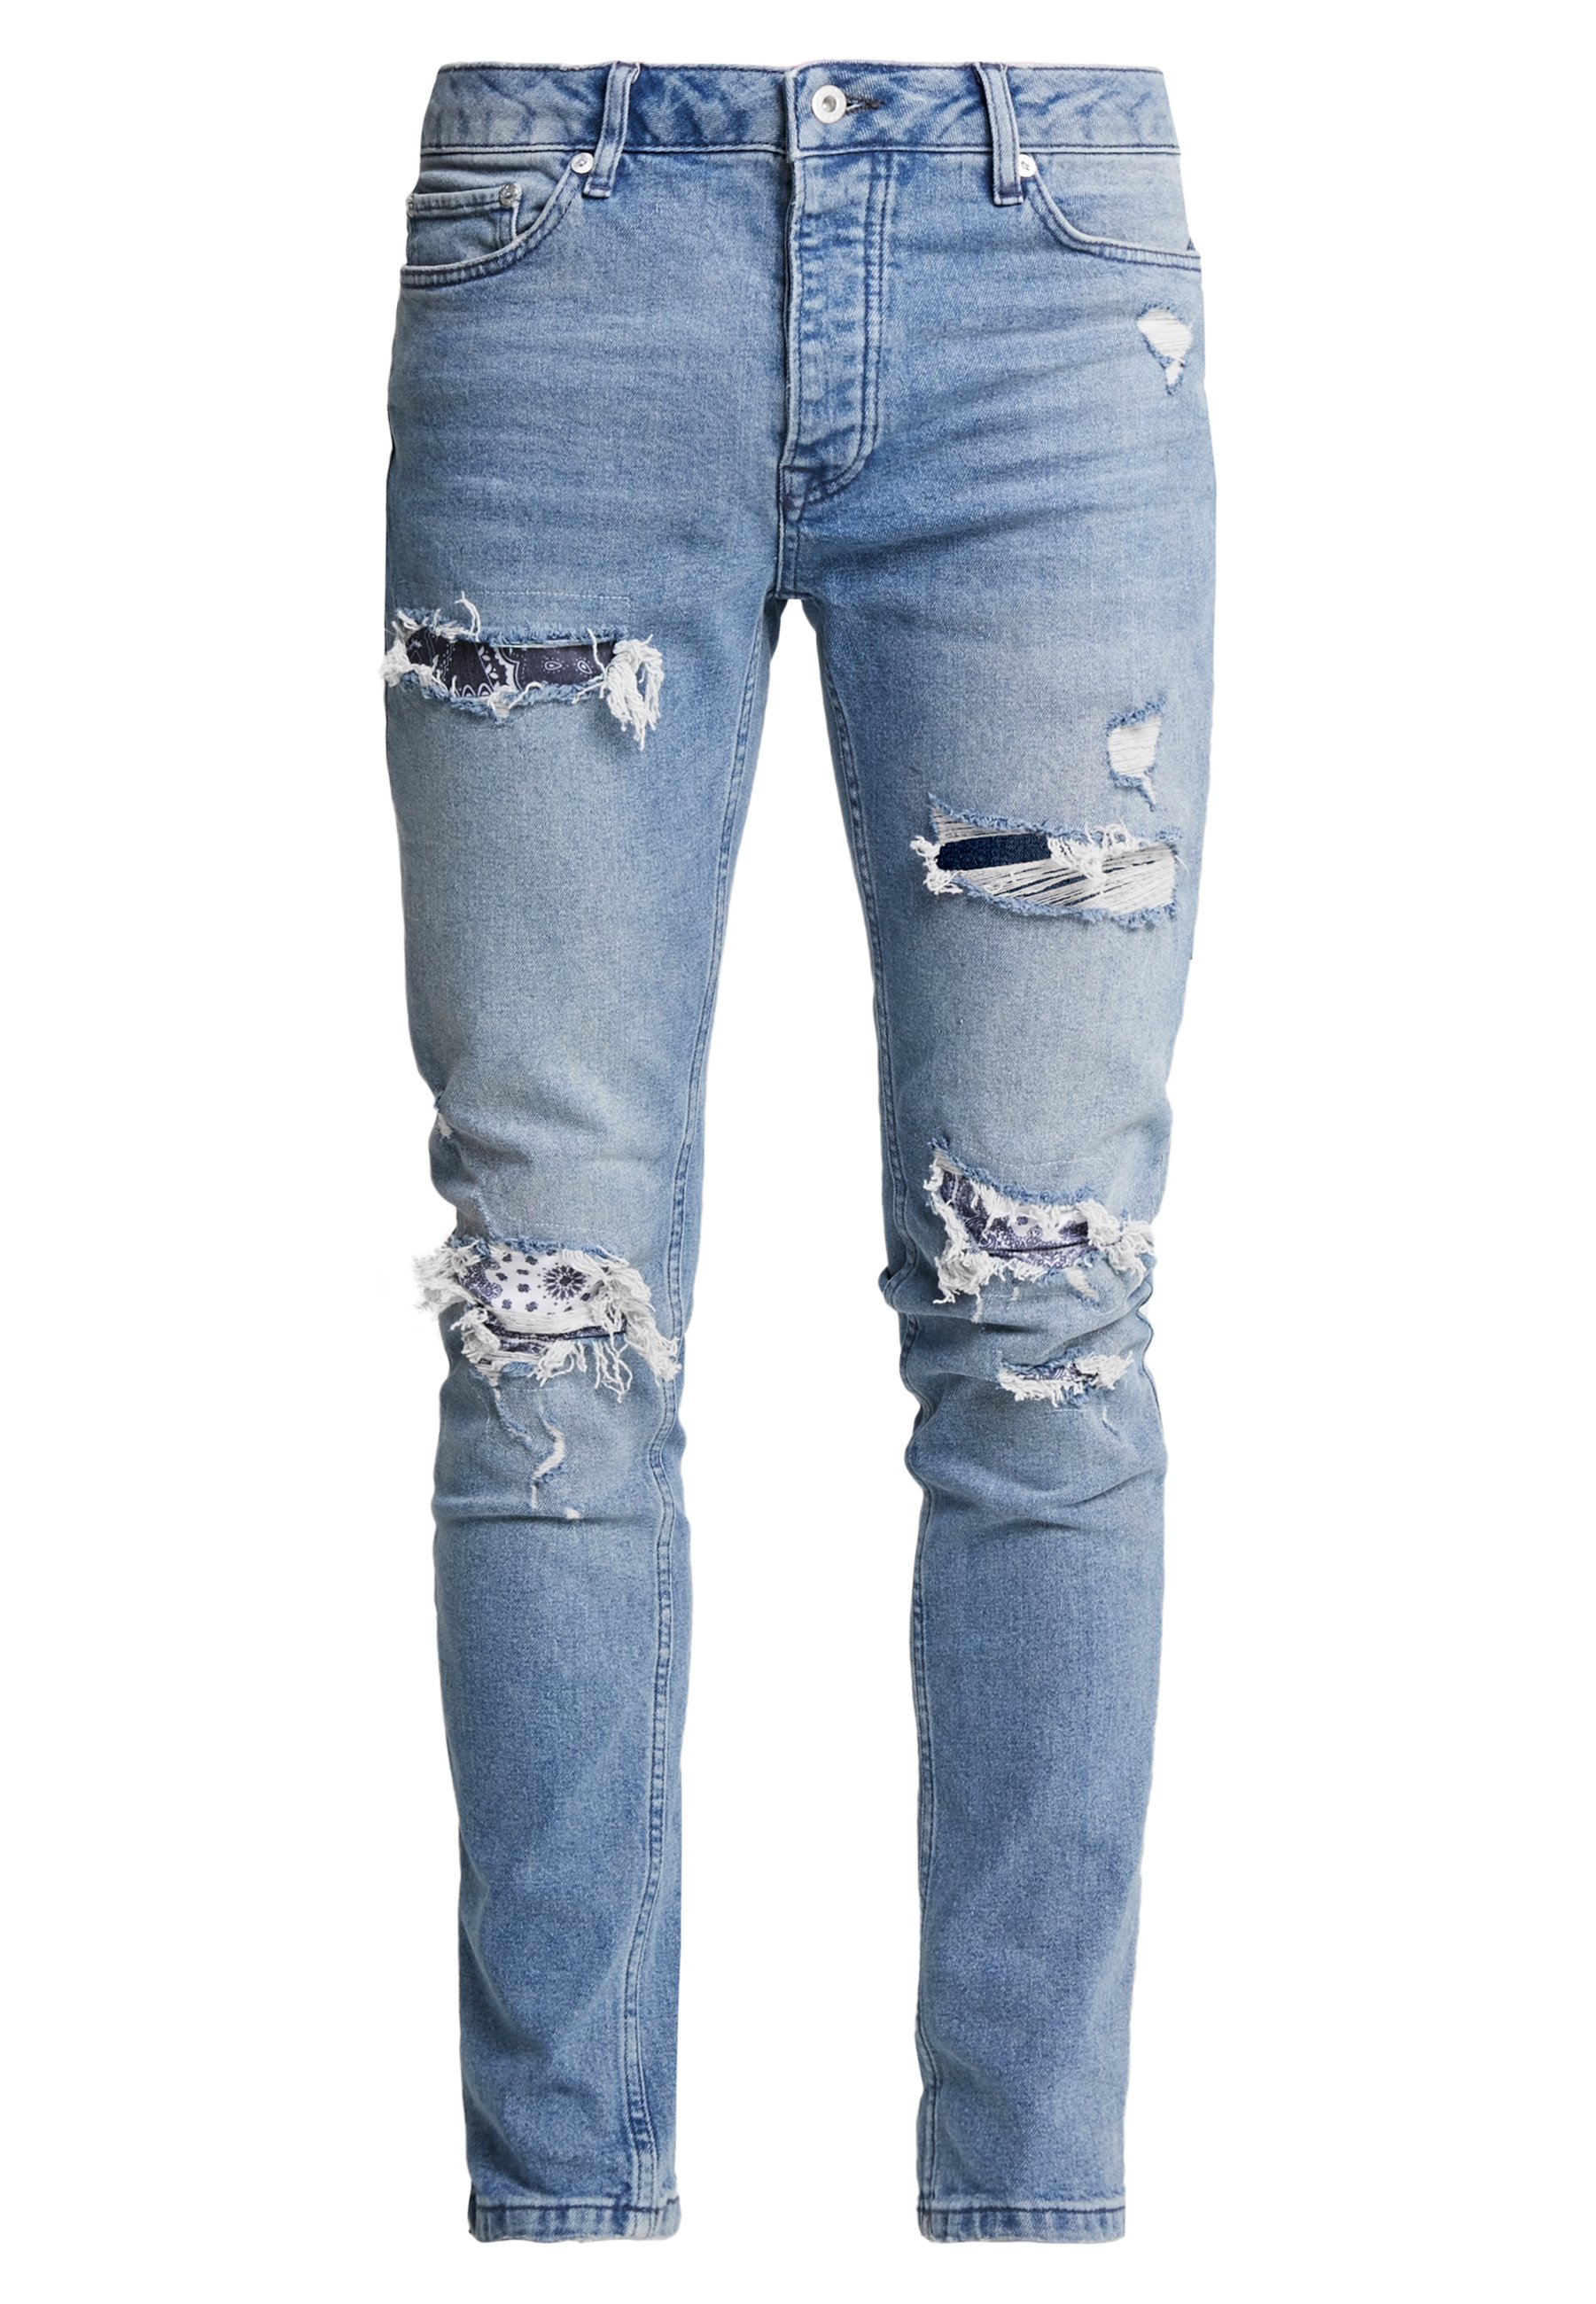 Topman Bandana Repair Update - Jeans Skinny Fit Blue Denim